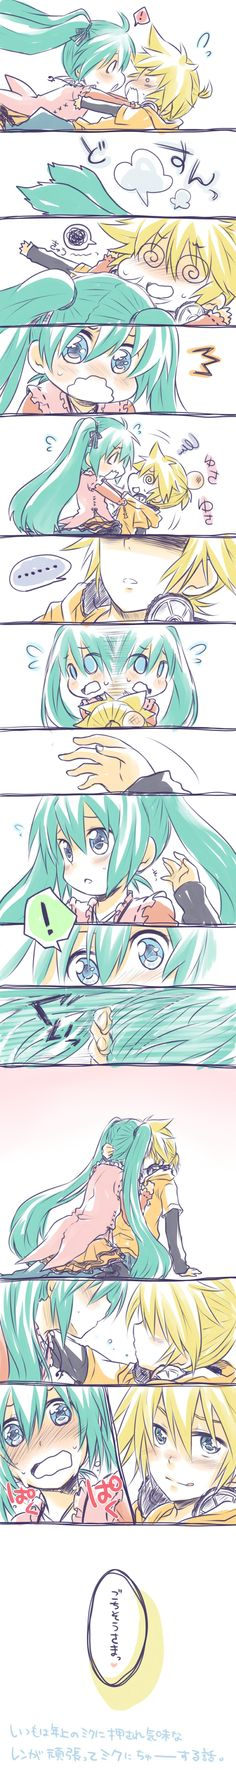 Miku x Len (idk why i ship this but i do cx)